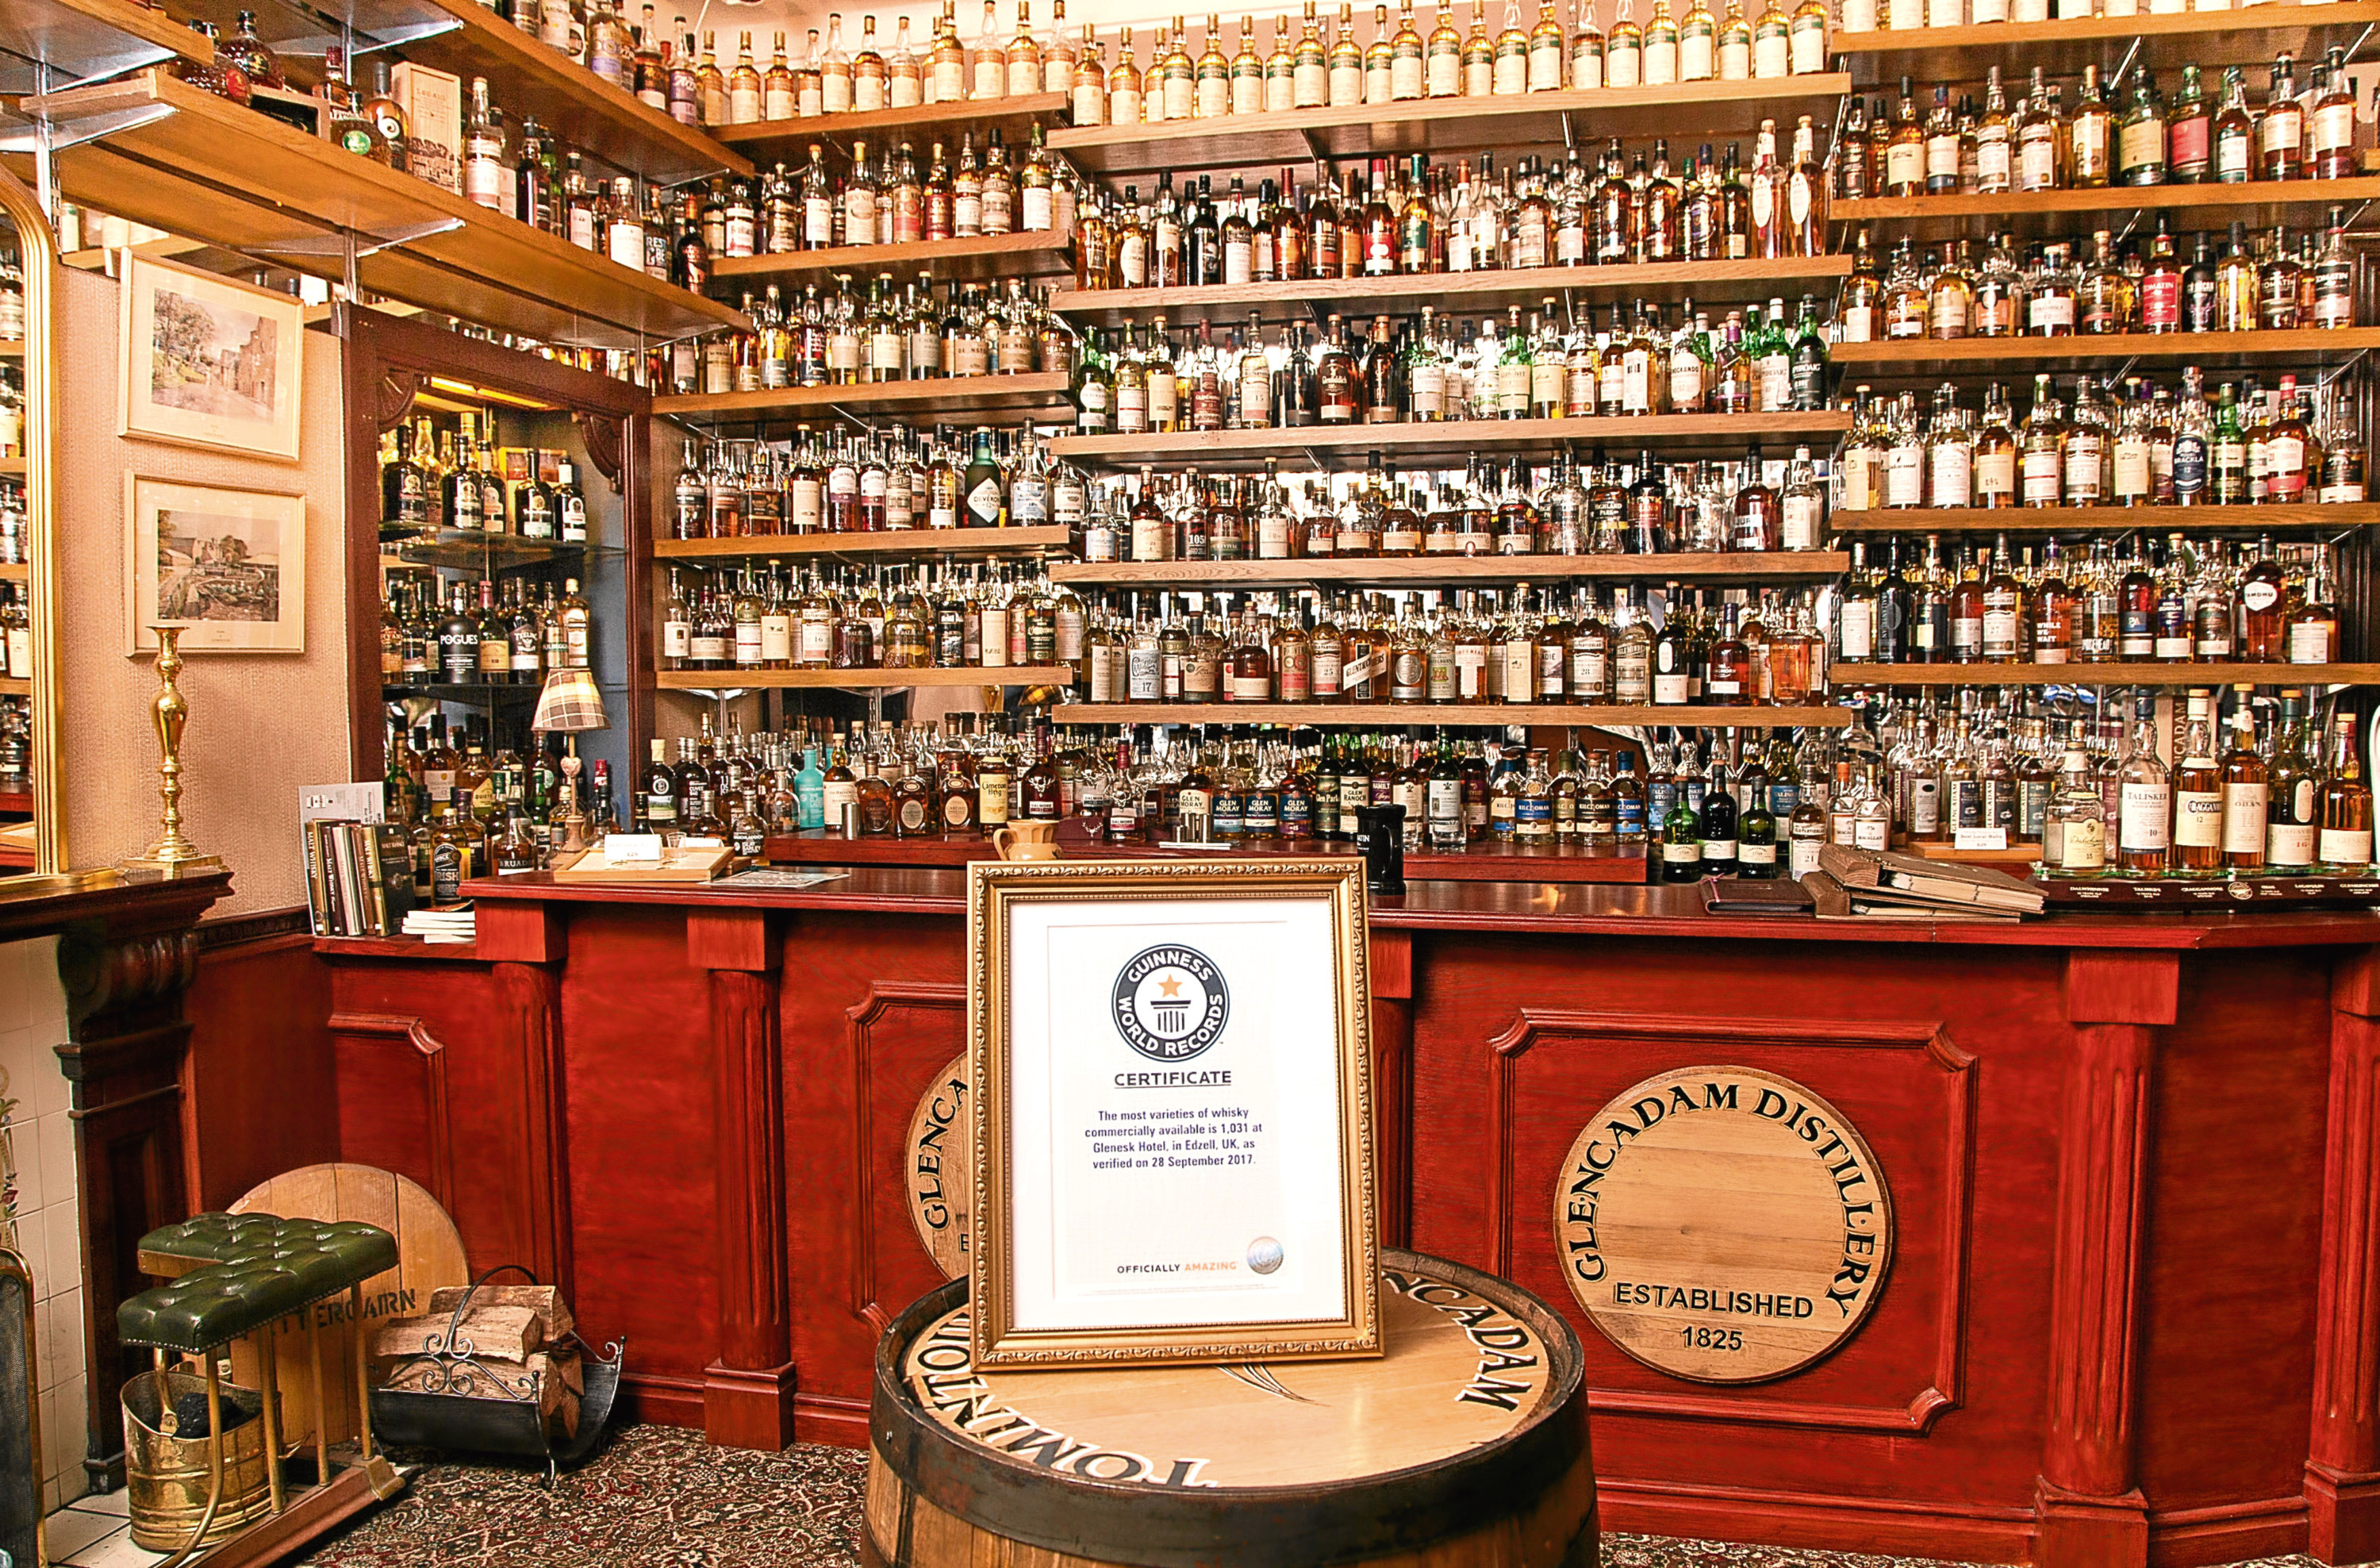 The Glenesk Hotel offers 1,031 whisky varieties.